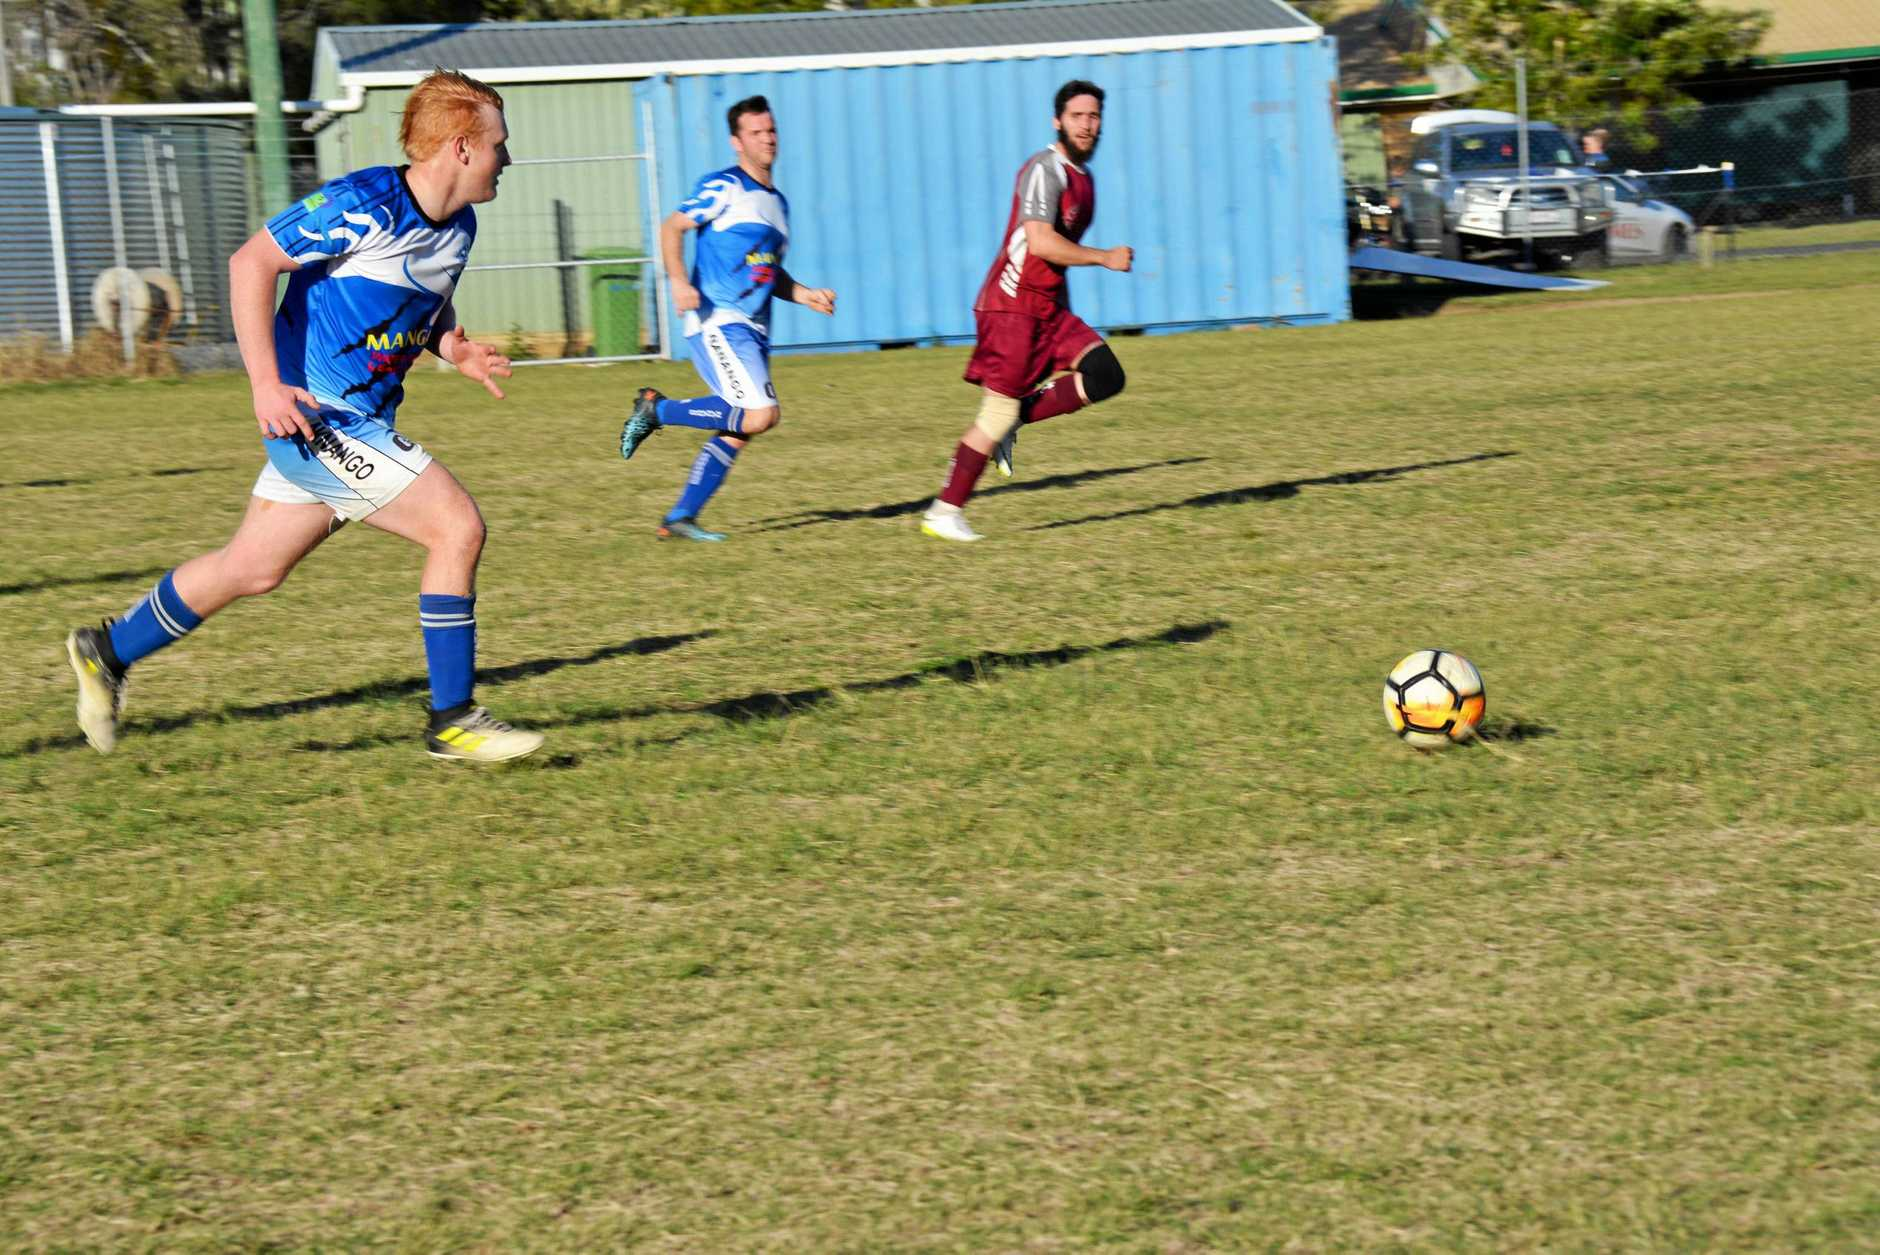 SOCCER: Nanango men's team played Barambah men's team at Nanango this weekend.